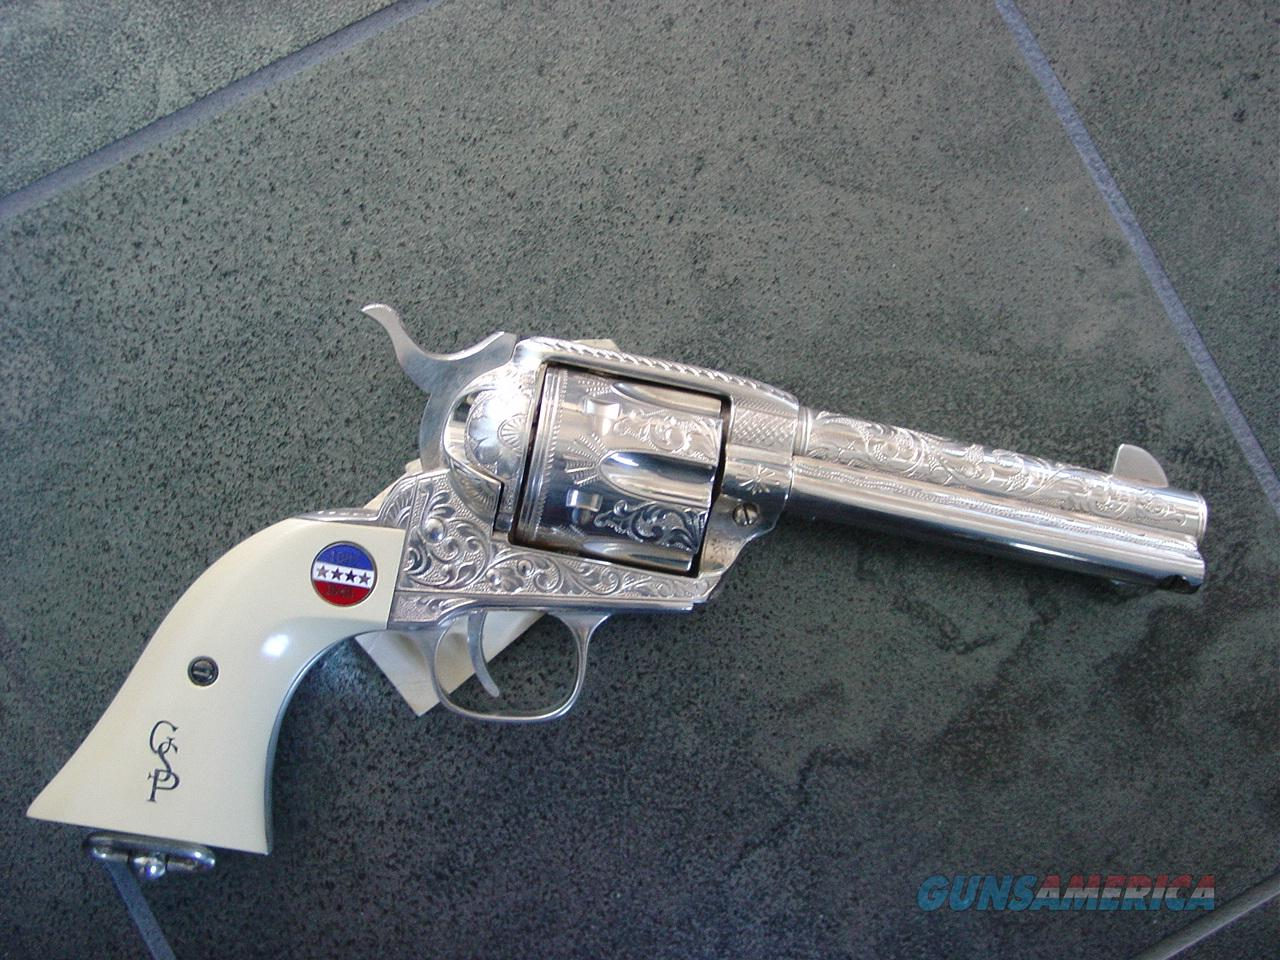 General Patton Commemorative SAA revolver,45Colt,silver plated,fully engraved,from The American Historical Foundation,made by Uberti ,1987,never fired or turned,certificate,letters,gloves,original packing box & other papers,hang tags etc.-  Guns > Pistols > Custom Pistols > Cowboy Action